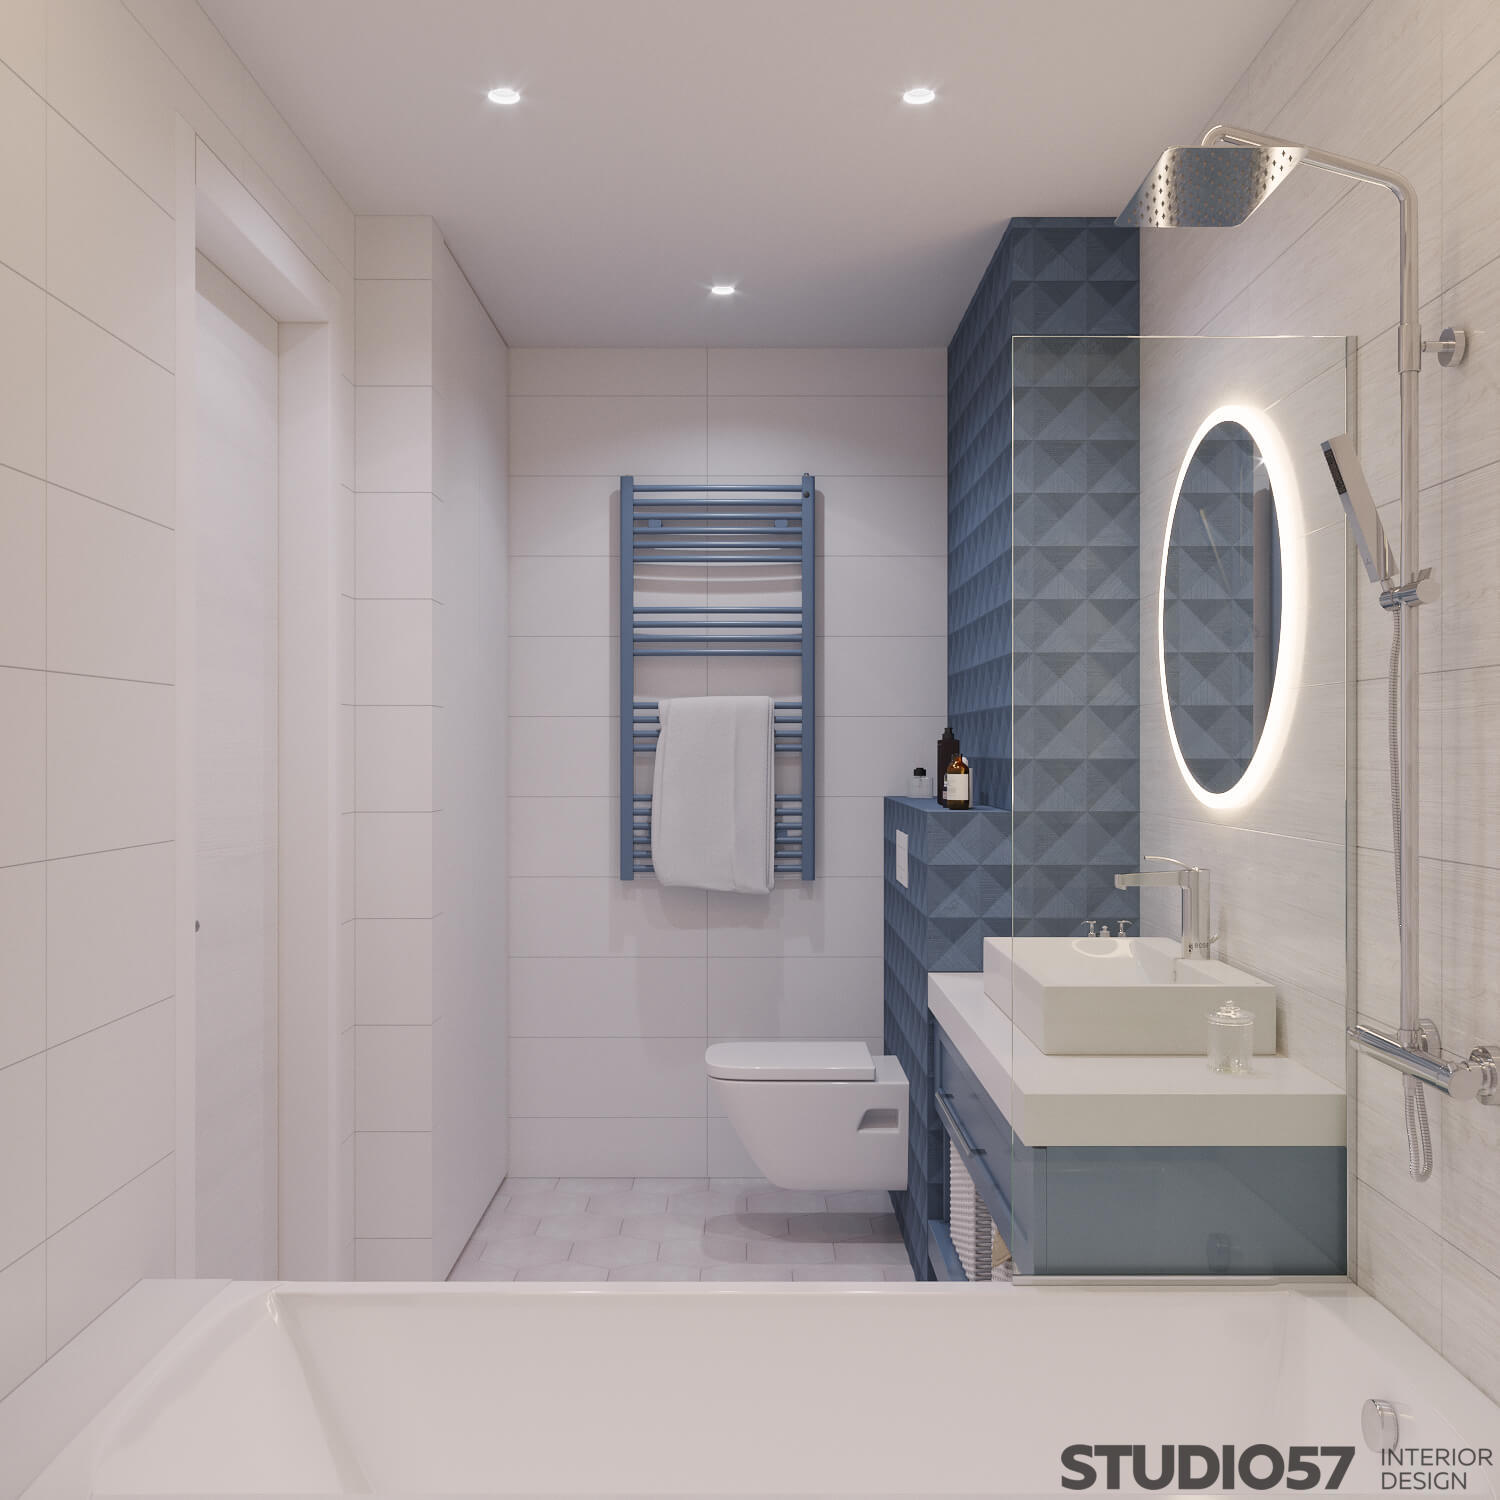 Interior bathroom with white and blue tiles